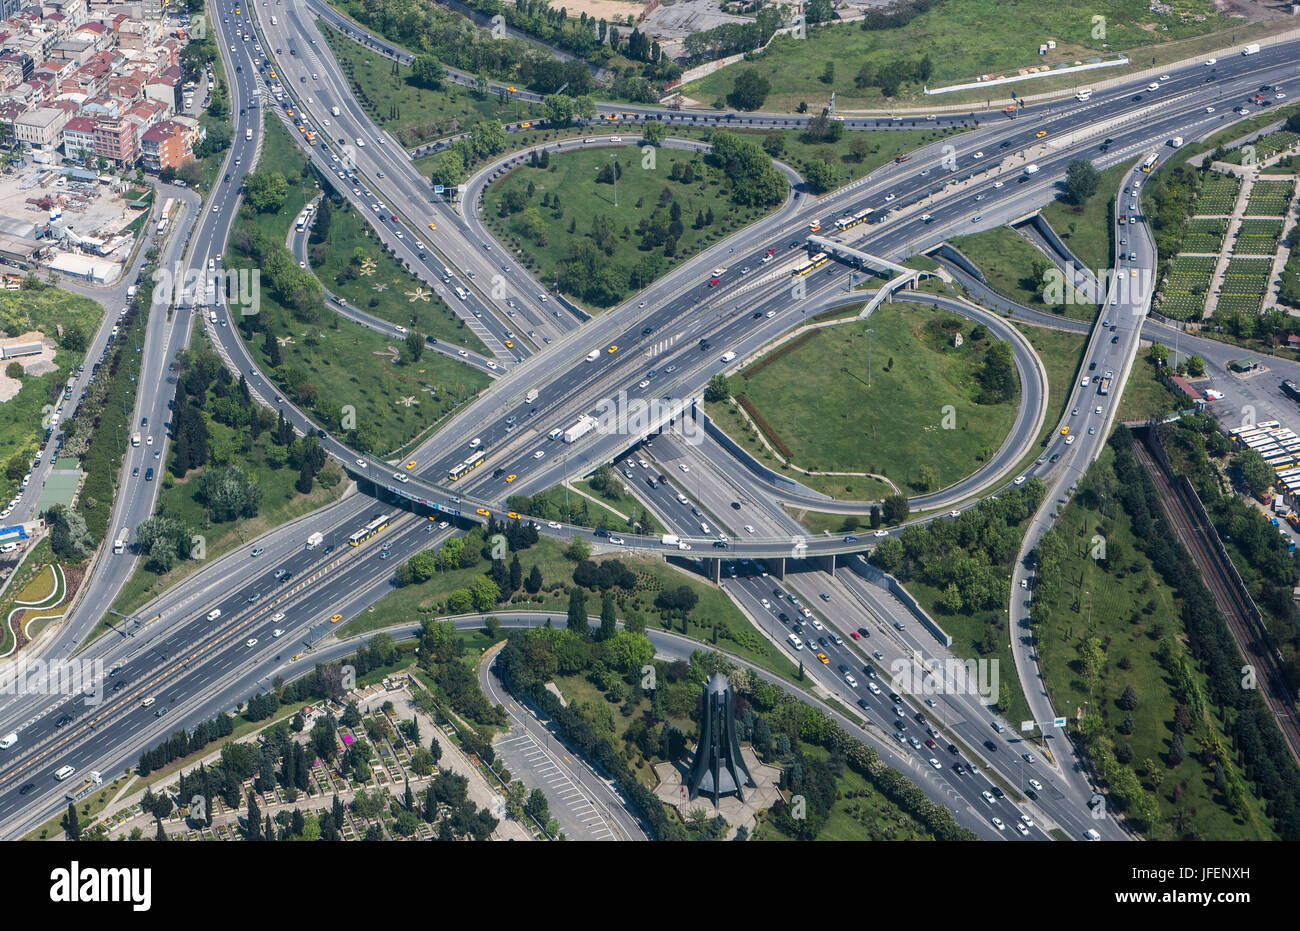 Turkey, Istambul City, Topcular District, Expressways crossing - Stock Image